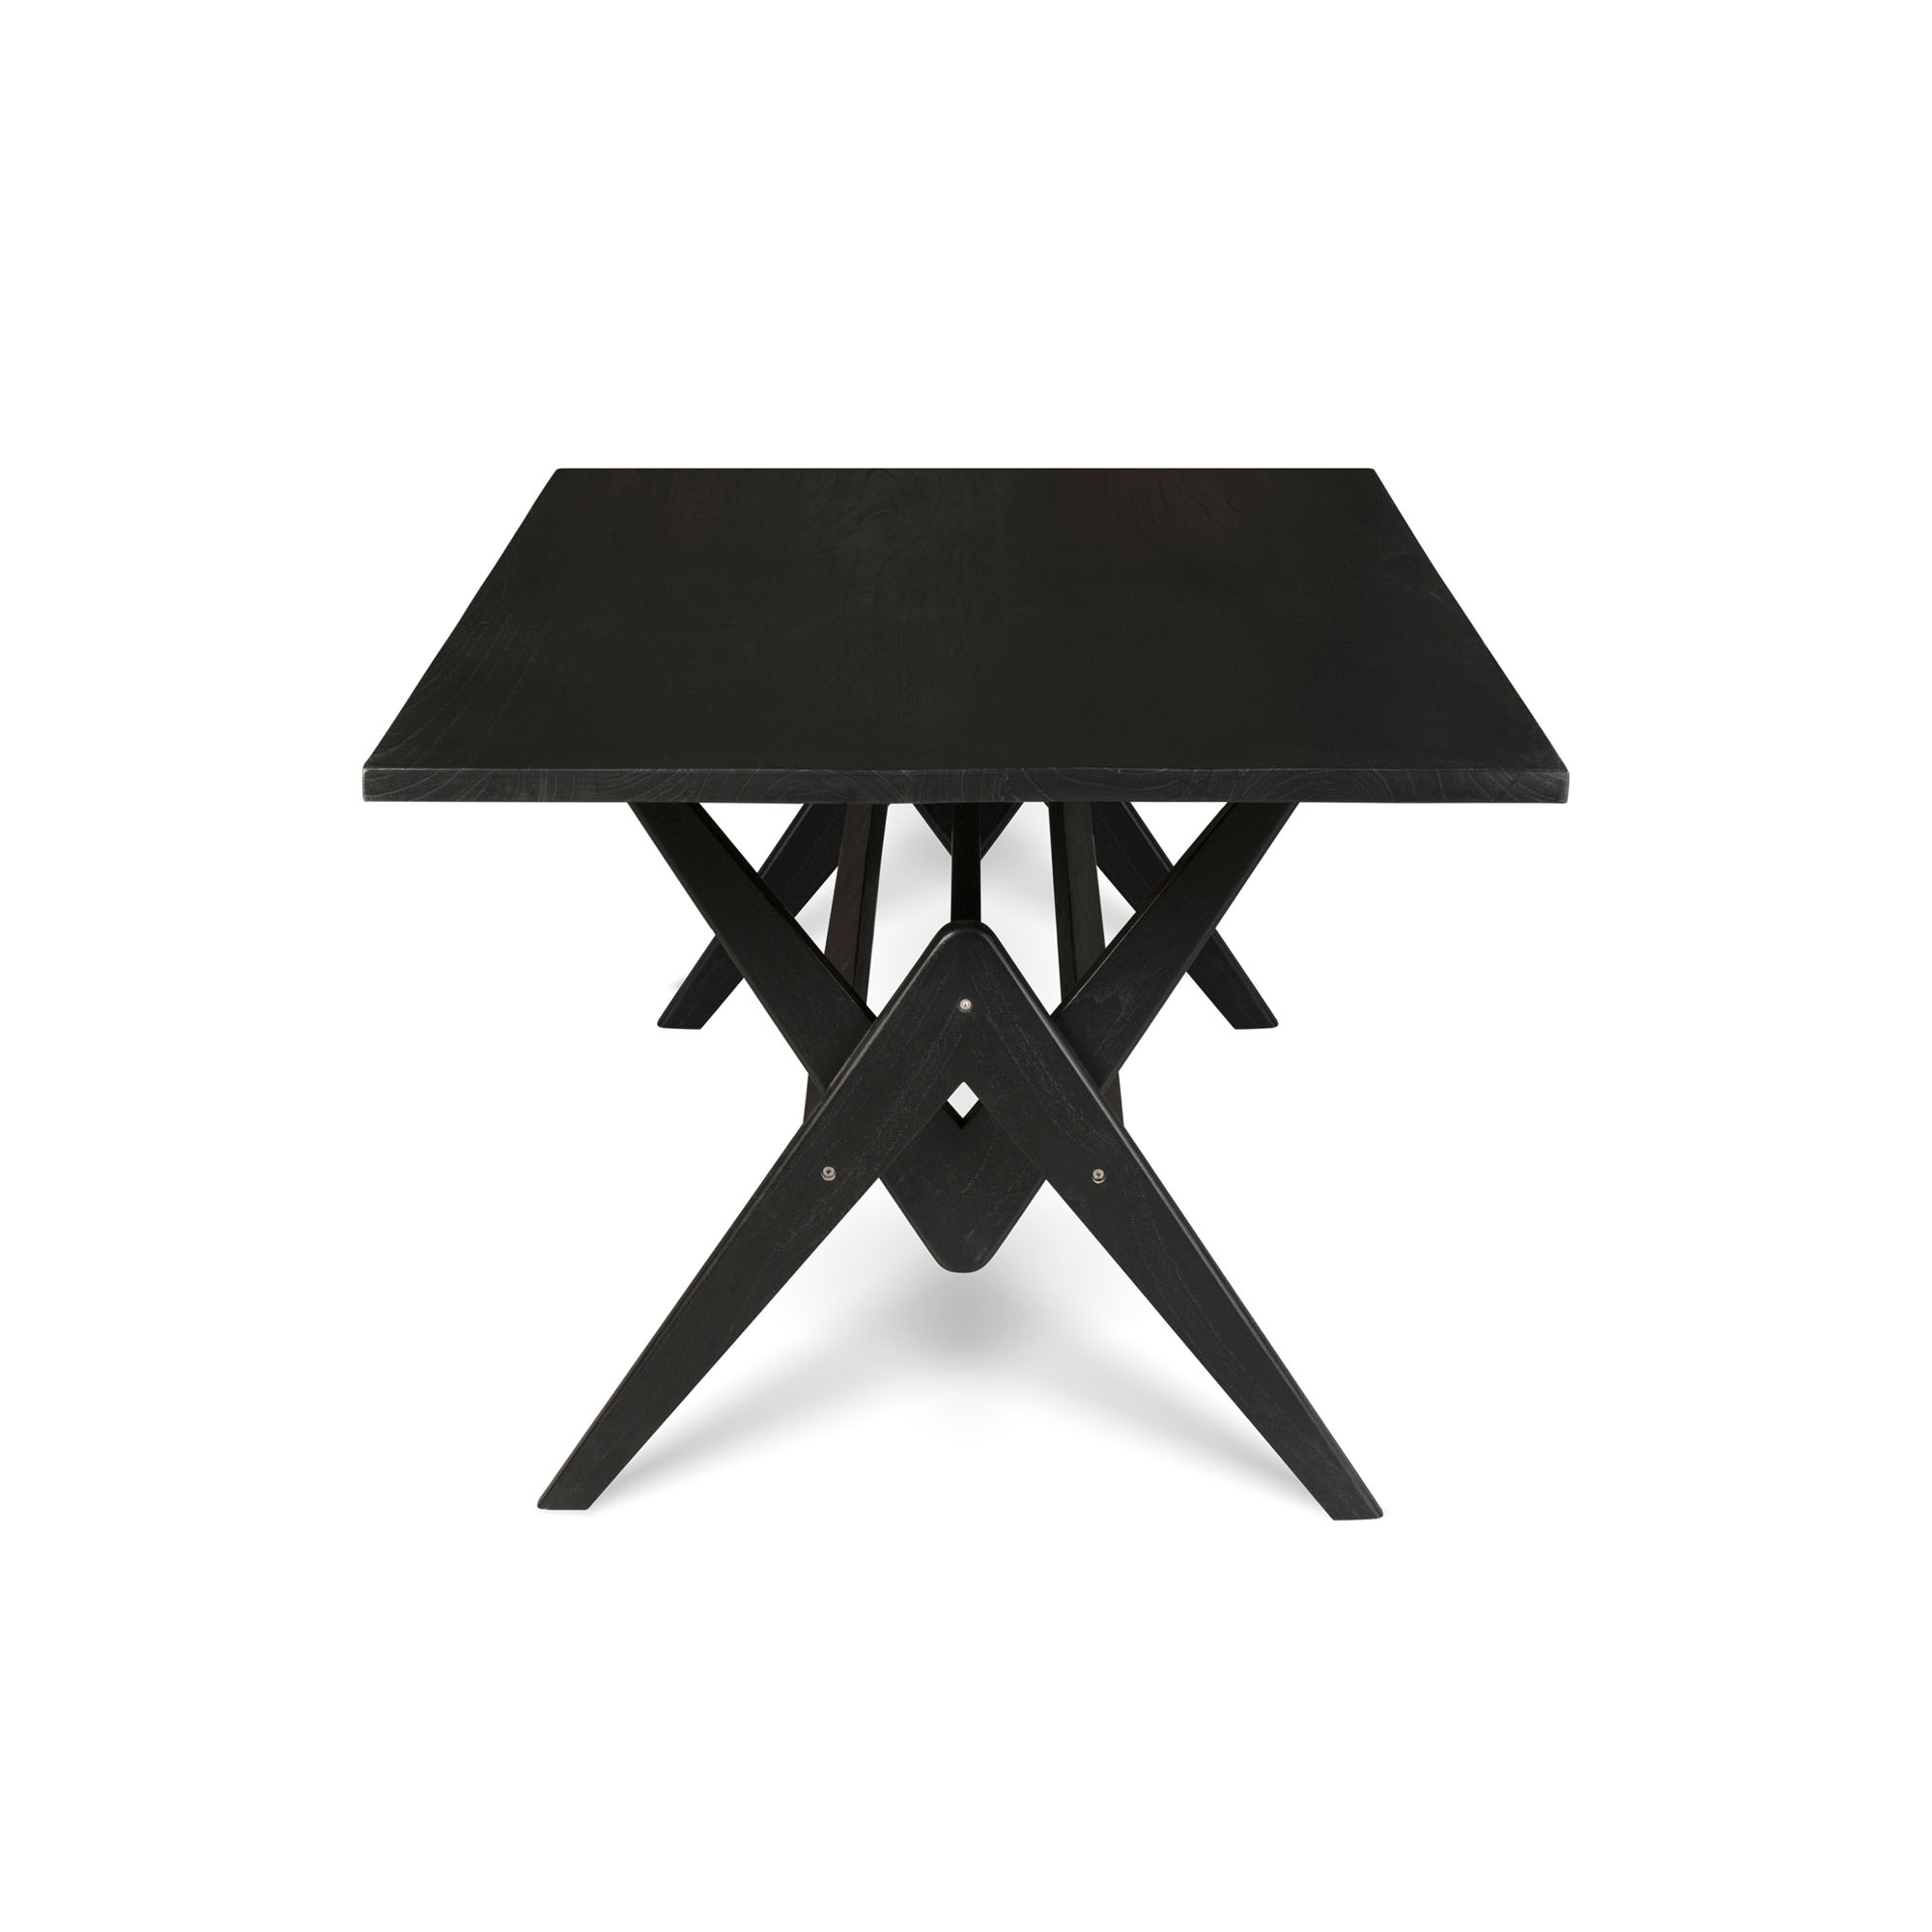 Dining Table W.T.H. 180 -  Charcoal Black-1